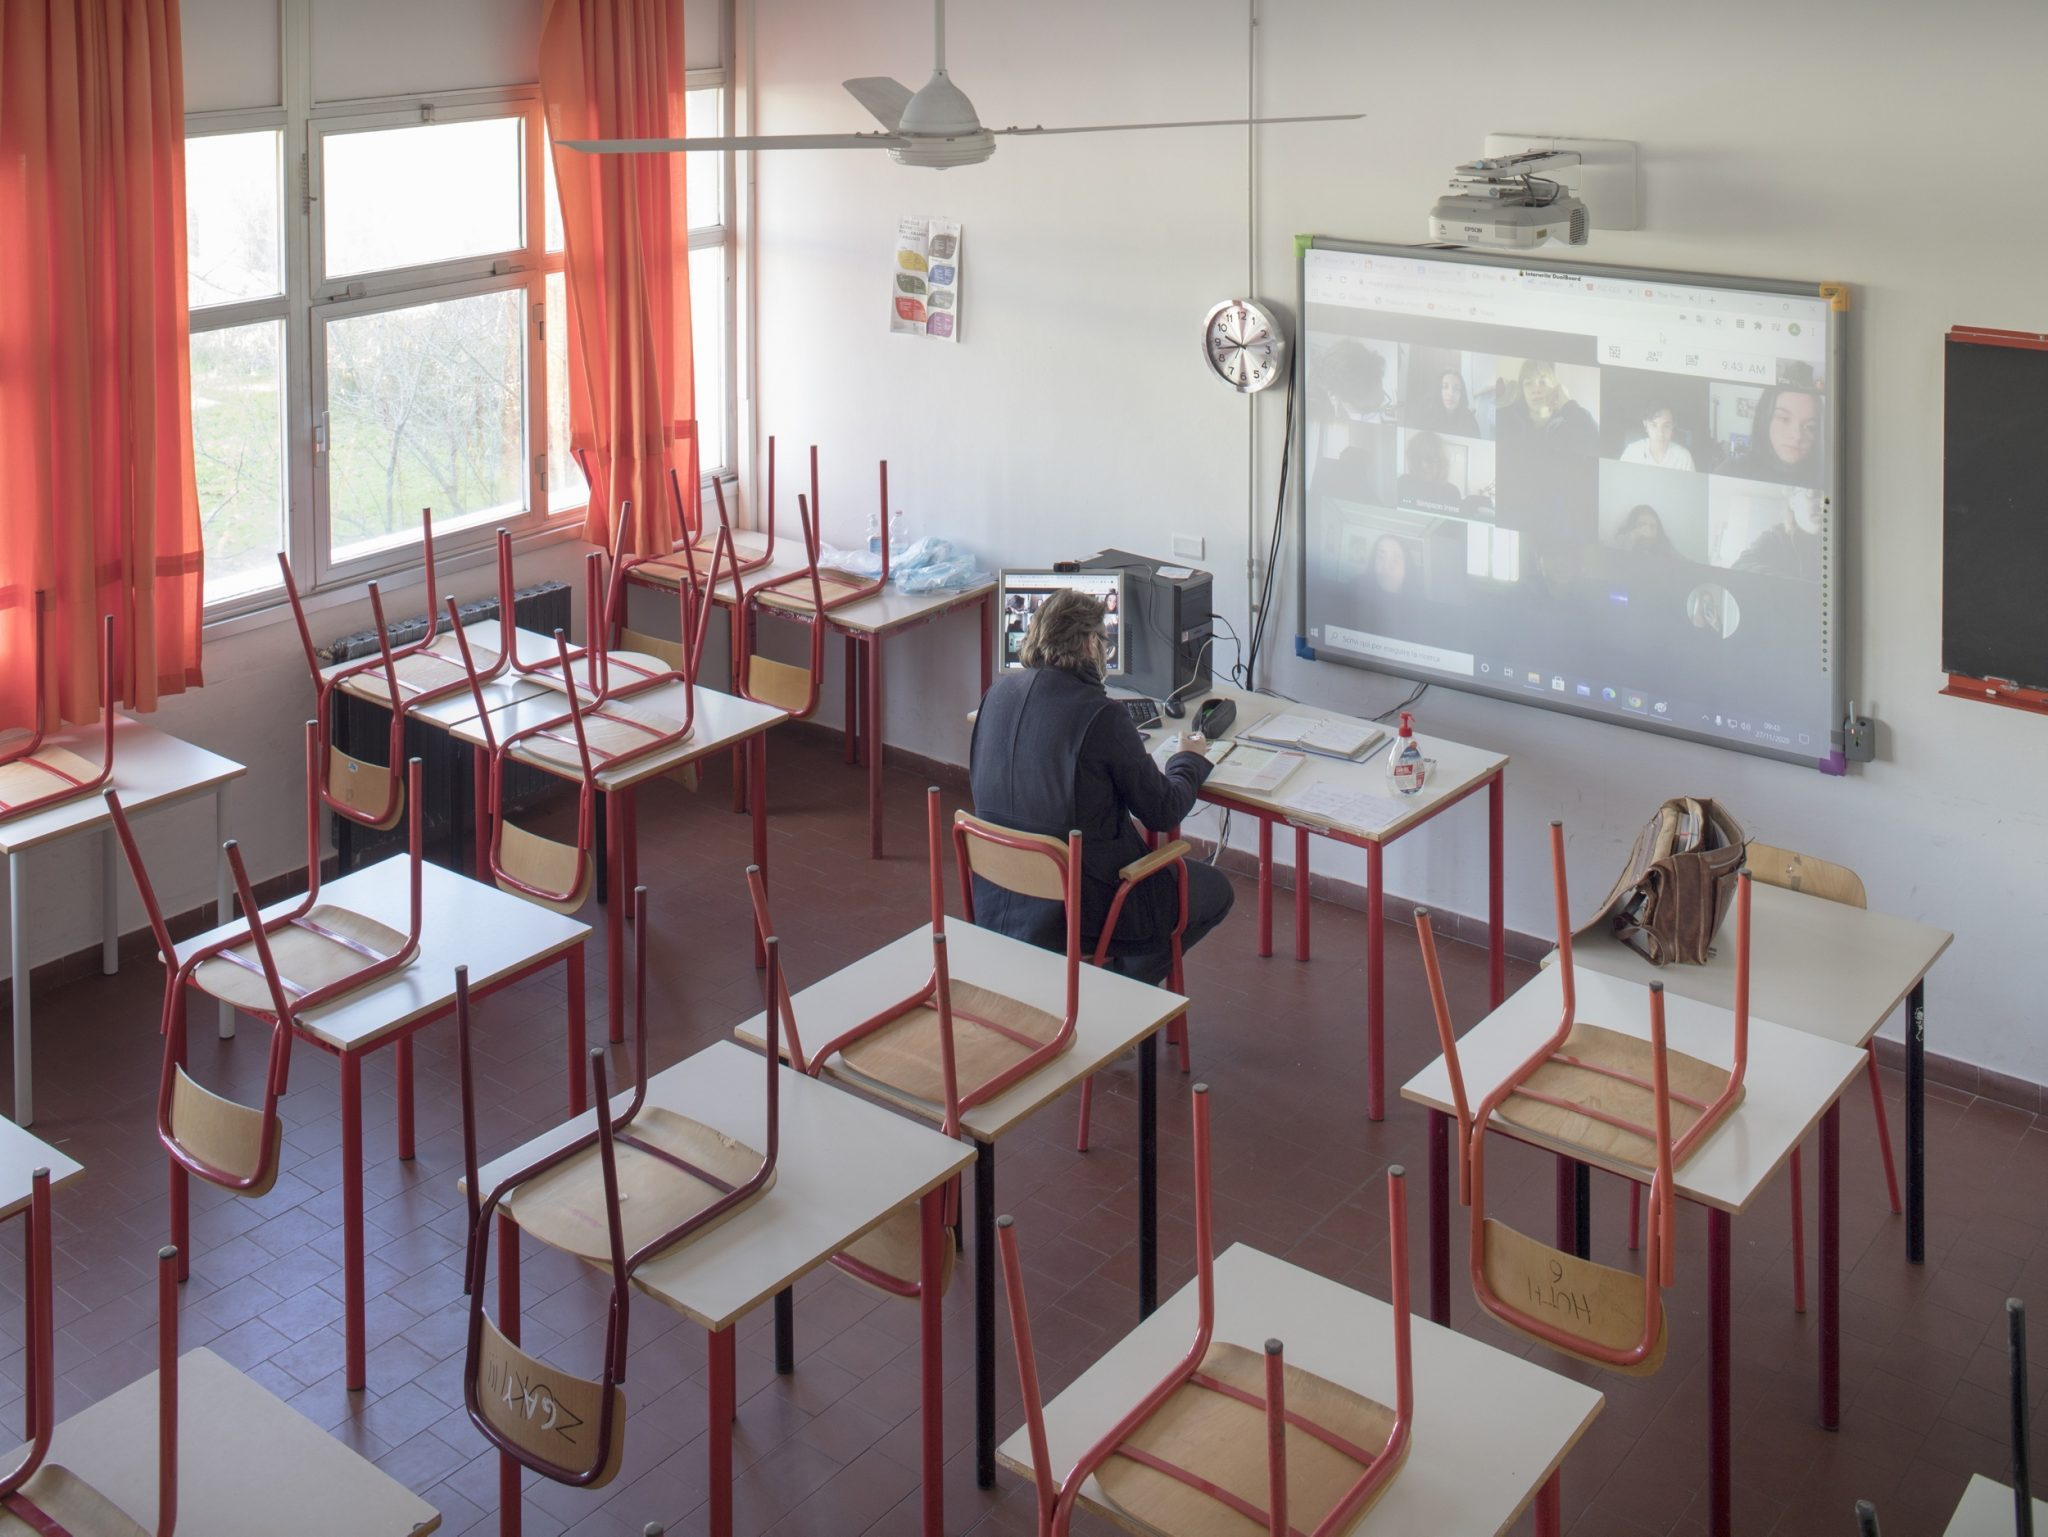 English class  at the Gobetti Volta linguistic High School, Bagno a Ripoli, Florence, Italy, 2020